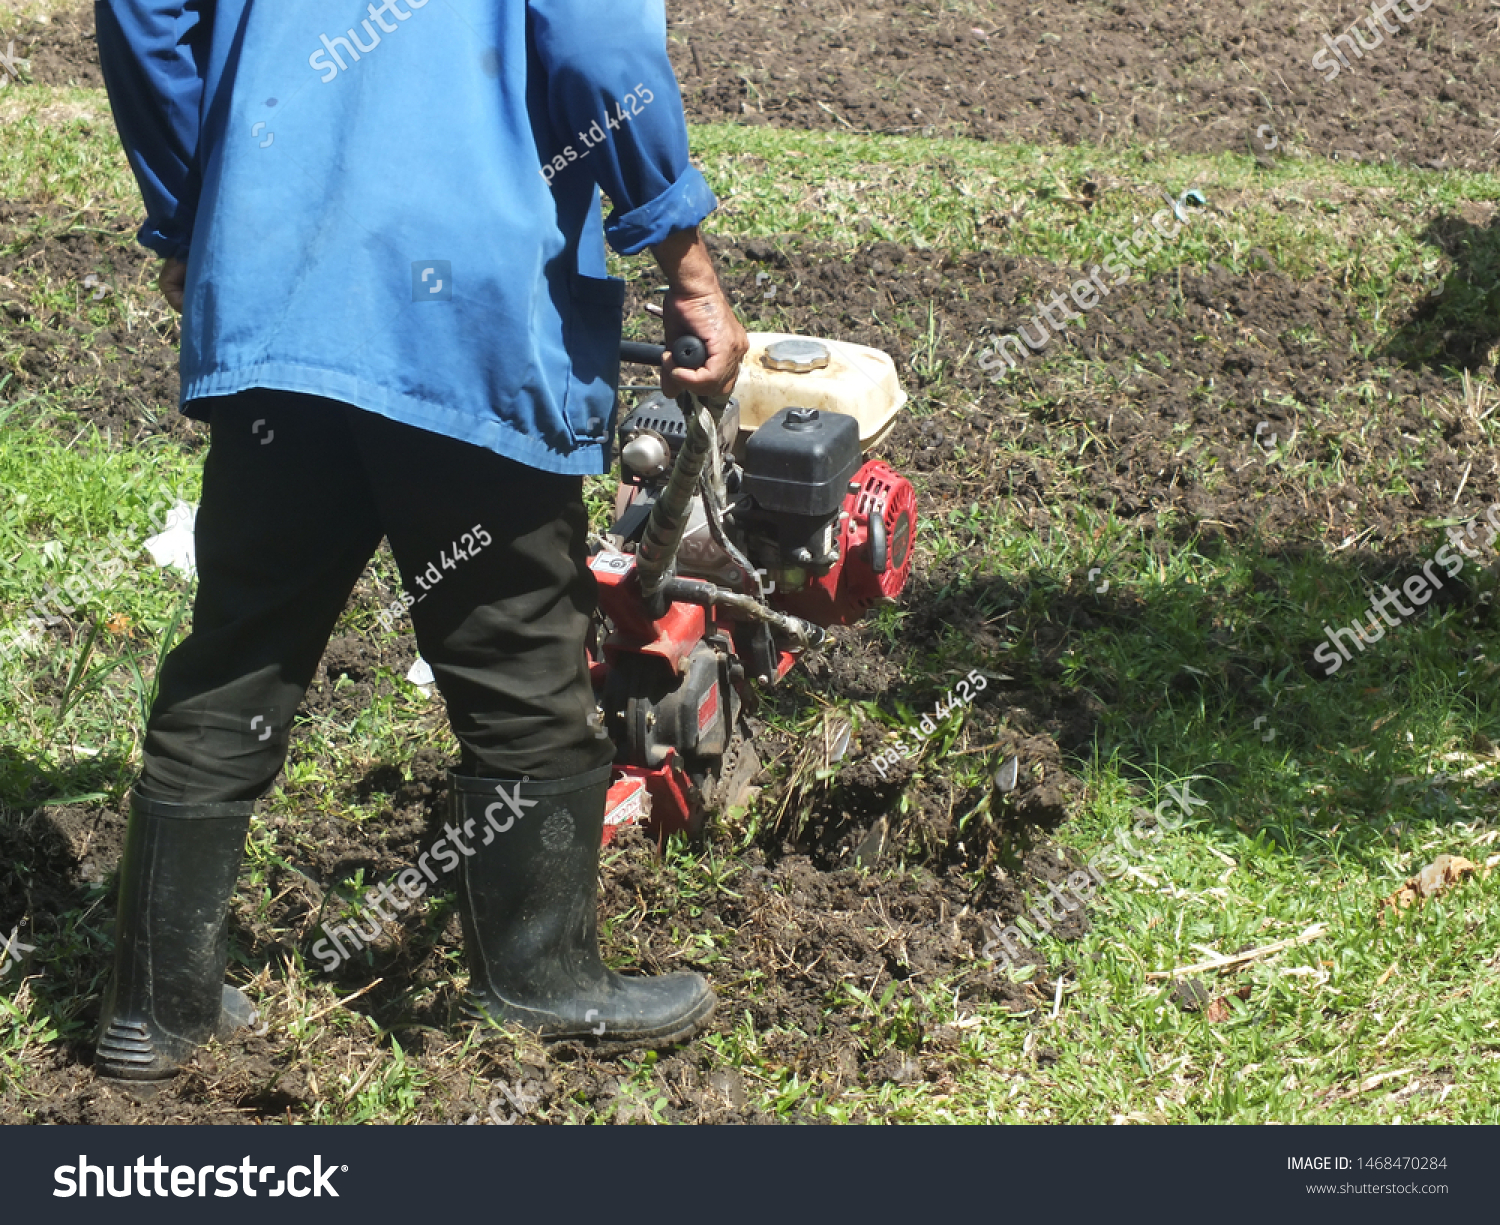 Farmer plowing the land in the garden with a hand tractor cultivator,Soil cultivation.  #1468470284